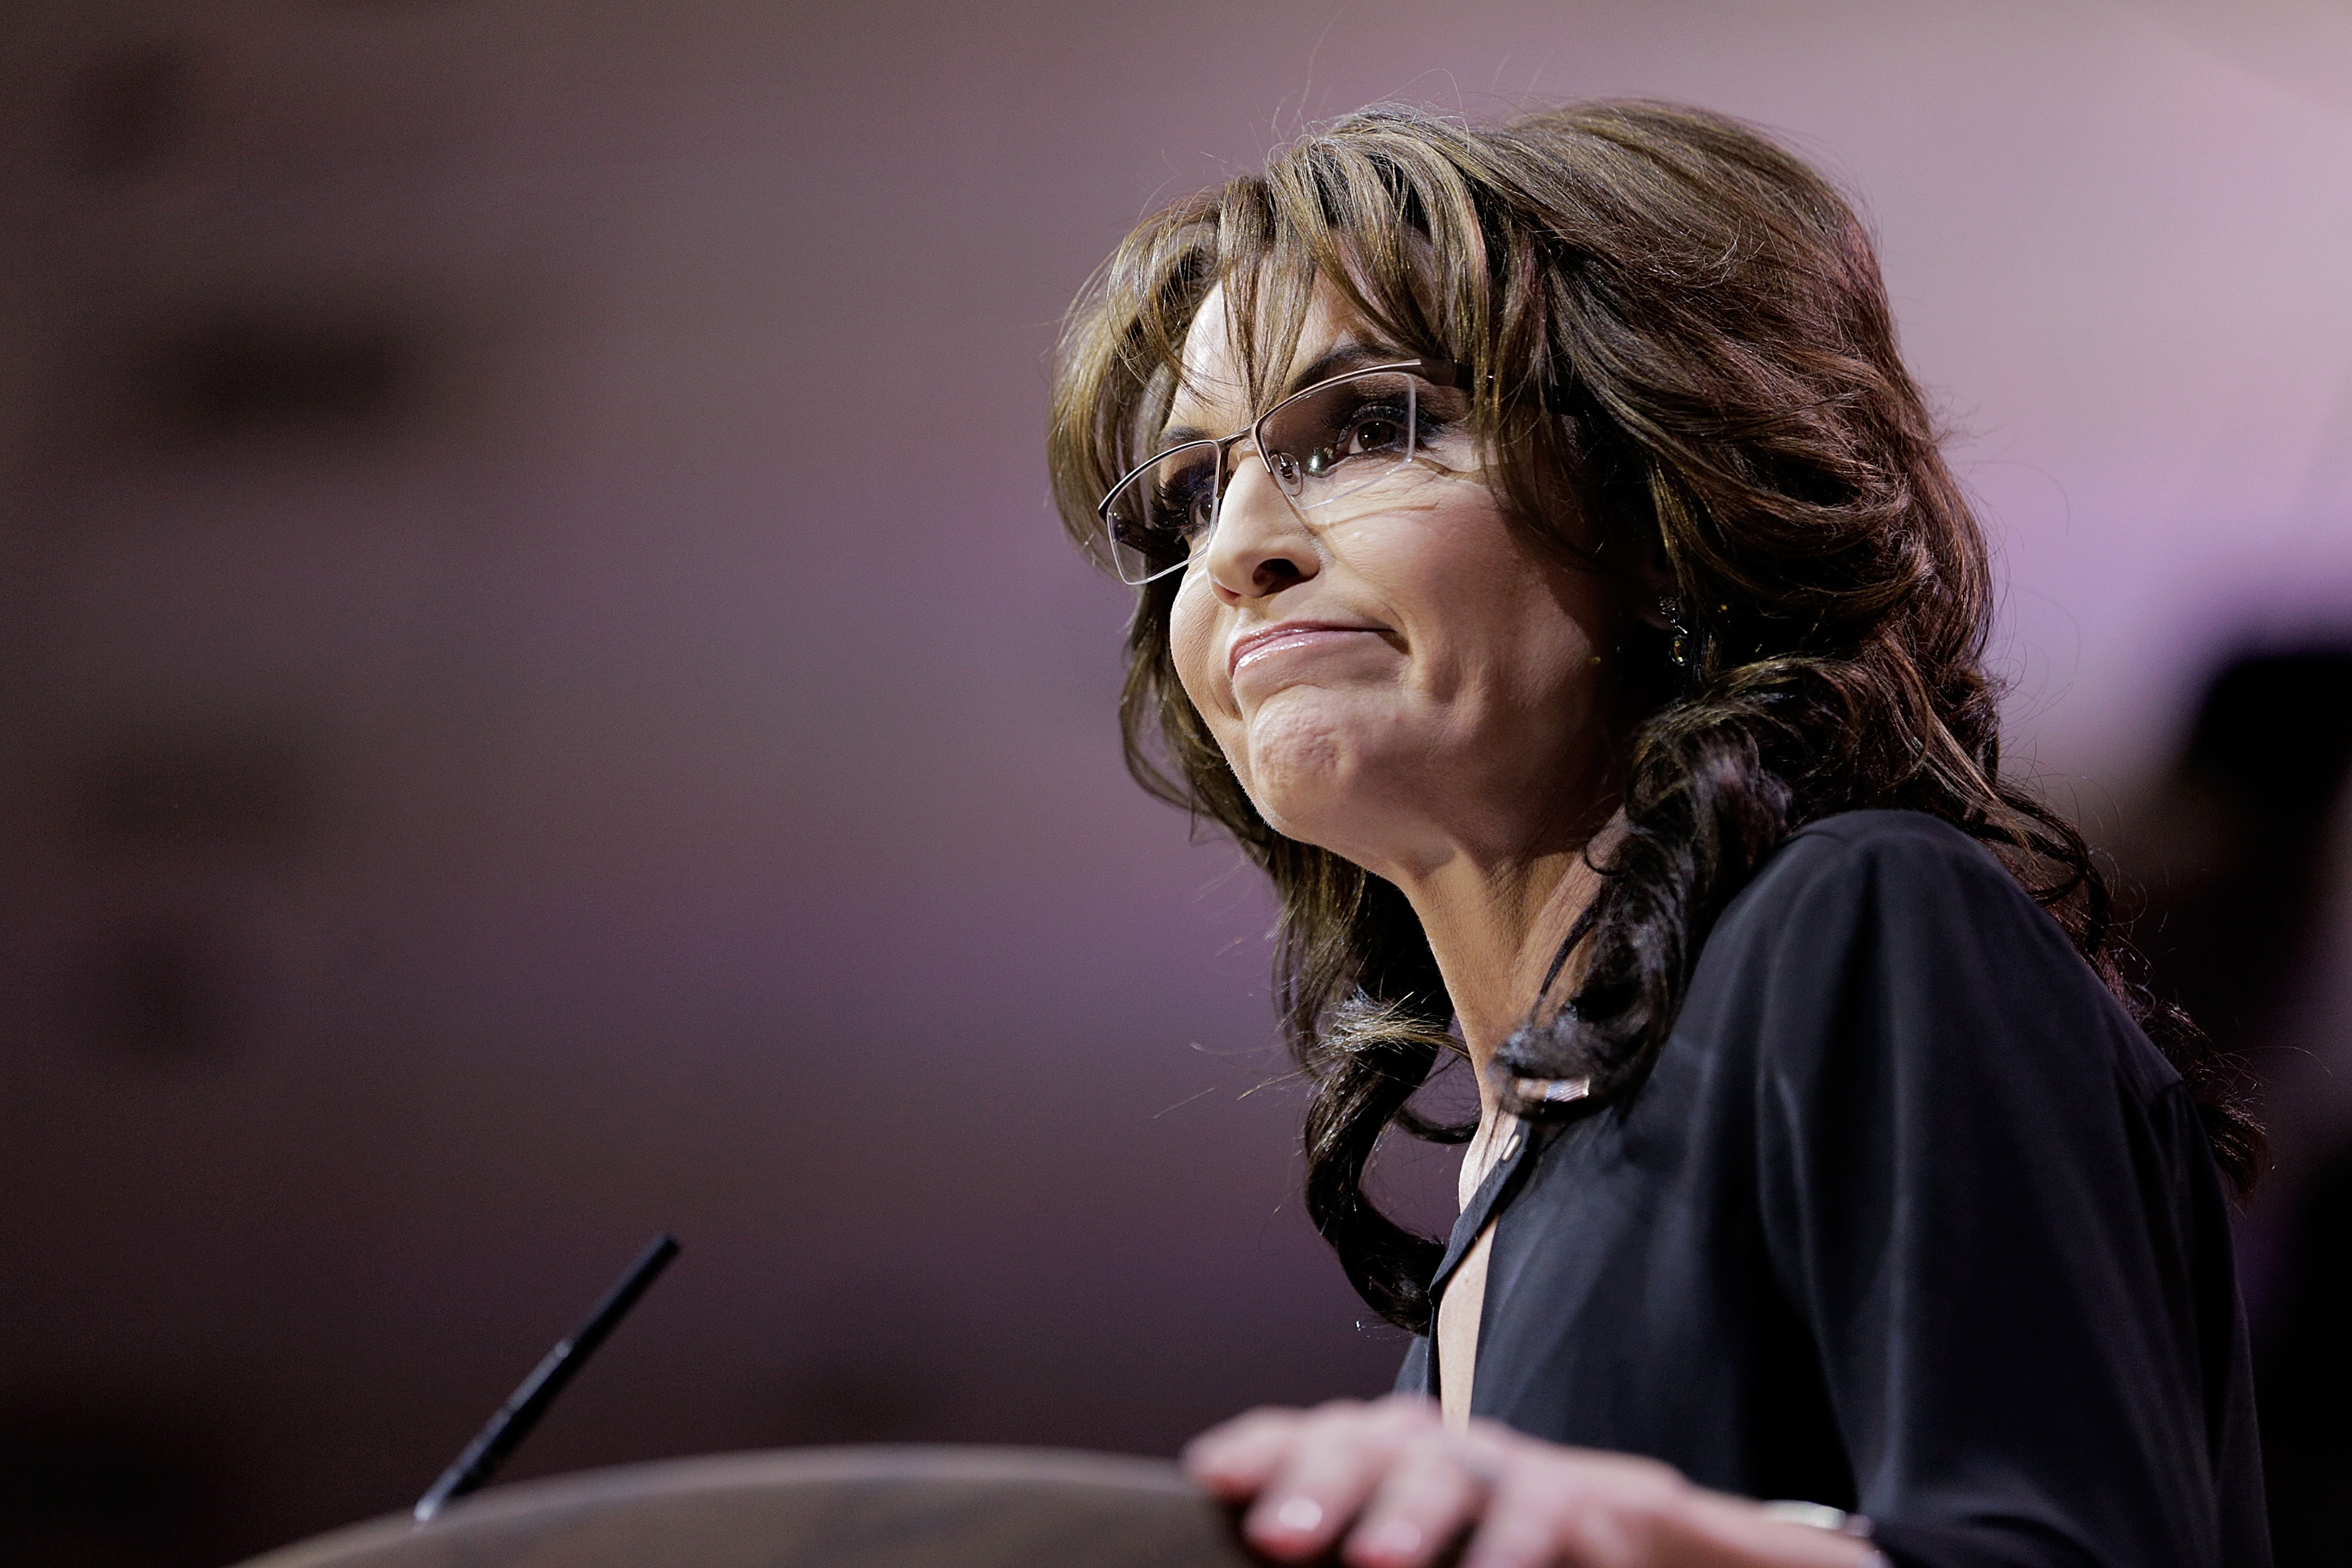 Sarah Palin speaks during the 41st annual Conservative Political Action Conference at the Gaylord International Hotel and Conference Center on March 8, 2014 in National Harbor, Md.